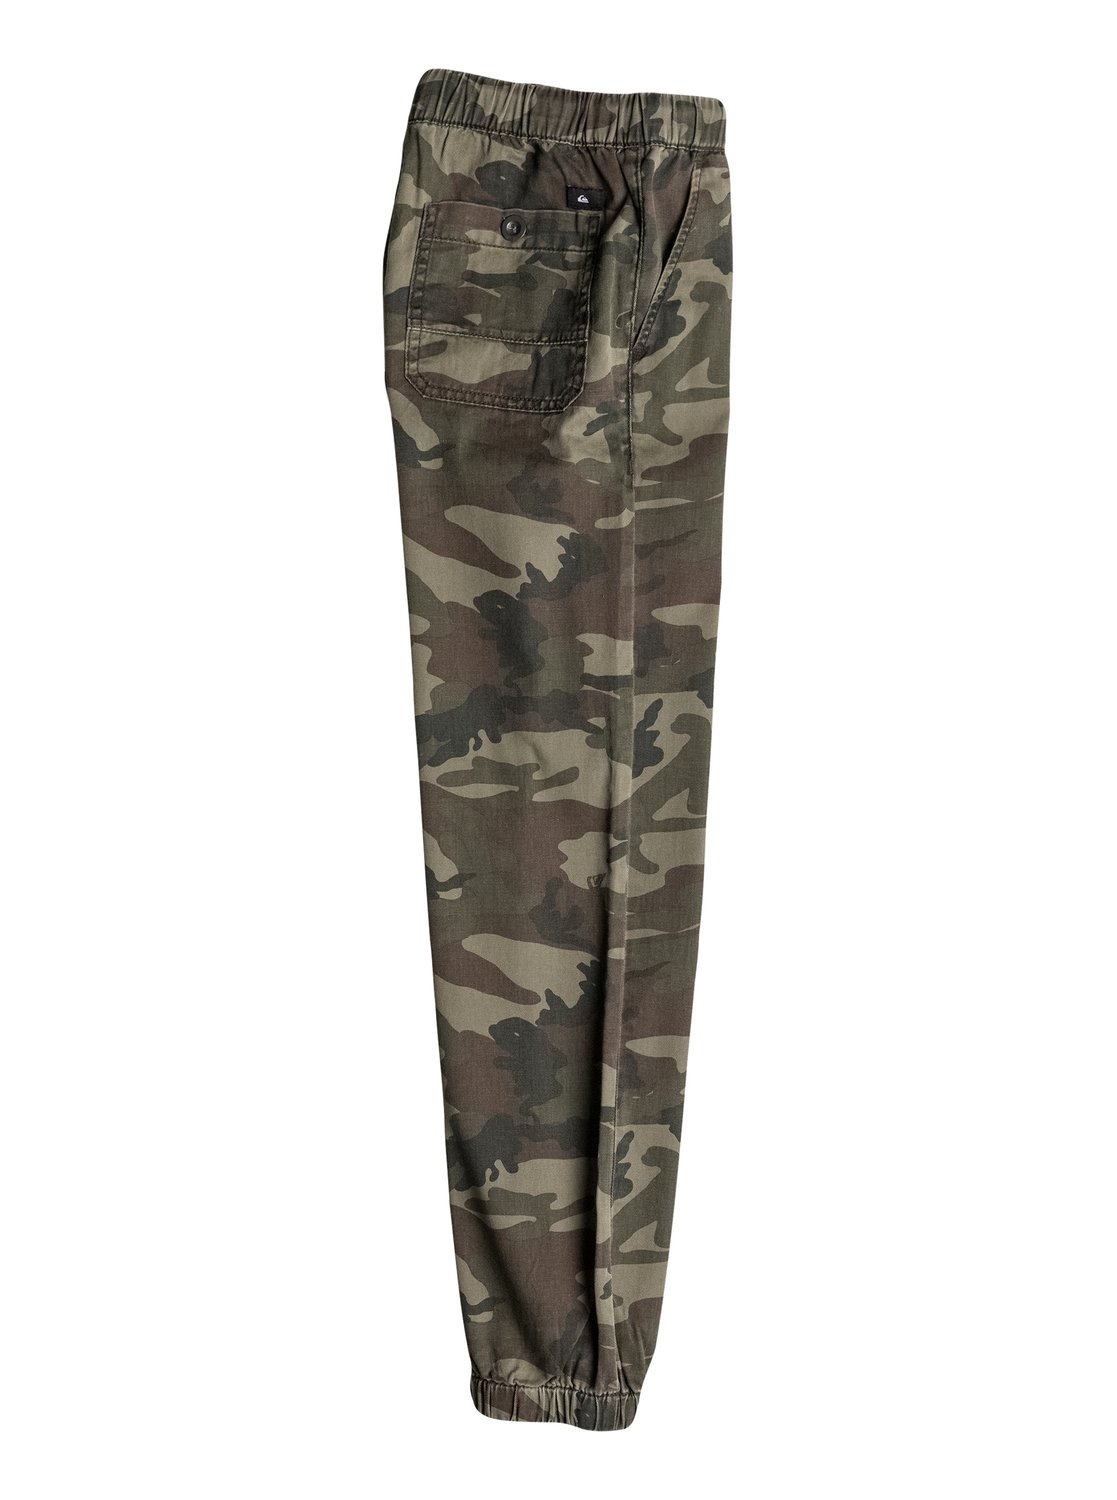 Shop for boys camo clothing online at Target. Free shipping on purchases over $35 and save 5% every day with your Target REDcard.